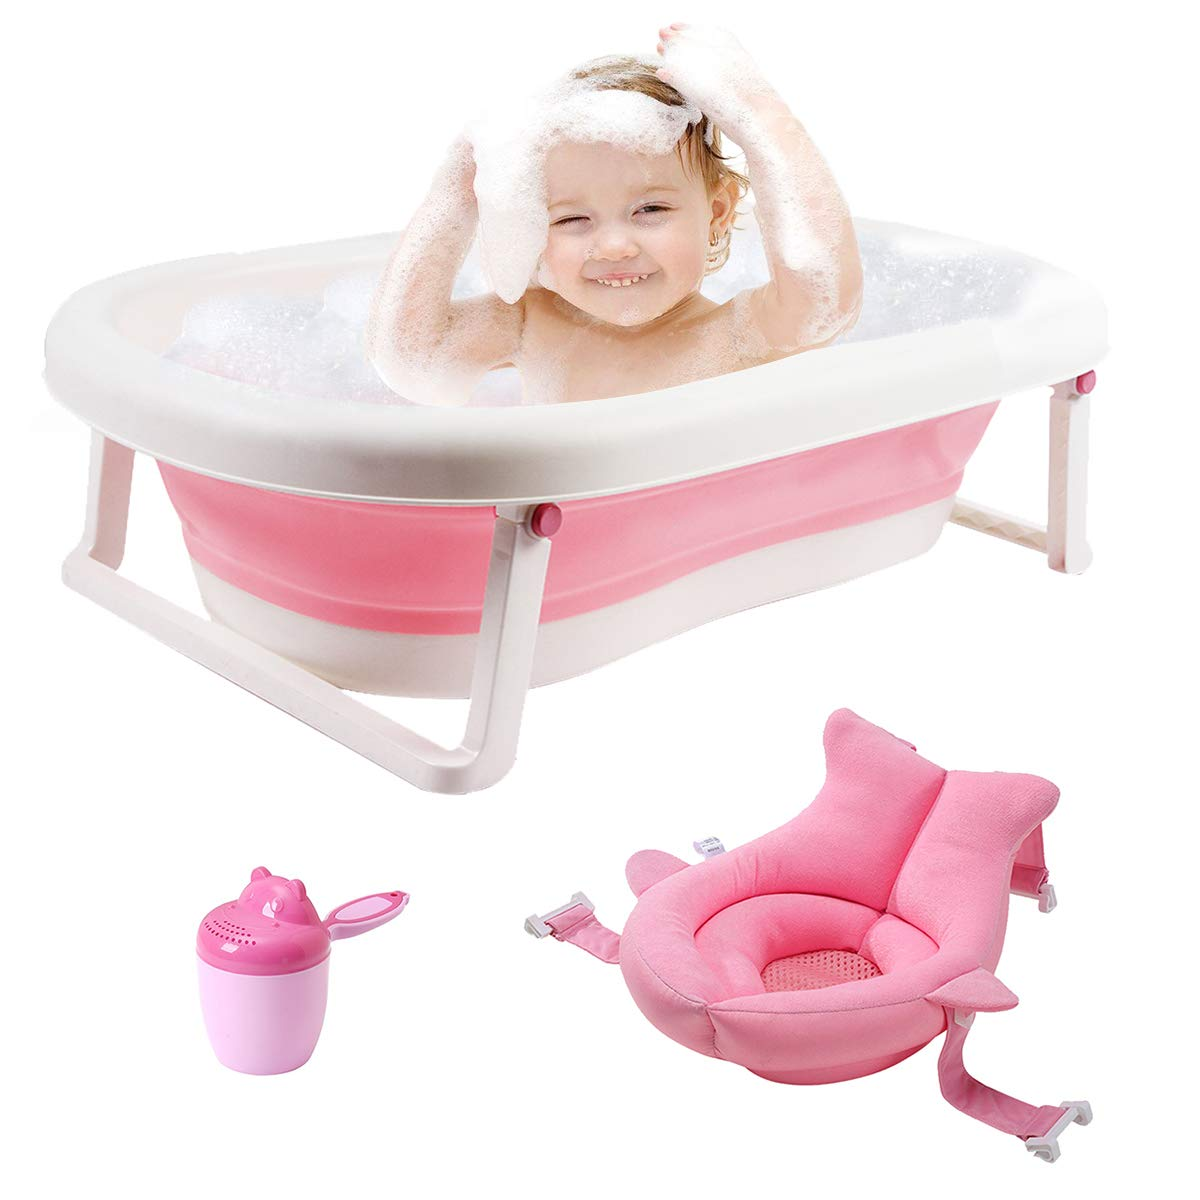 3-in-1 Baby Bathtub Portable Collapsible Toddler Bath tub Foldable Infant Shower Basin Anti Slip Skid Proof with Baby Cushion & Water Rinser Cup for 0-5 Years(Pink tub+Cushion) by UNAOIWN